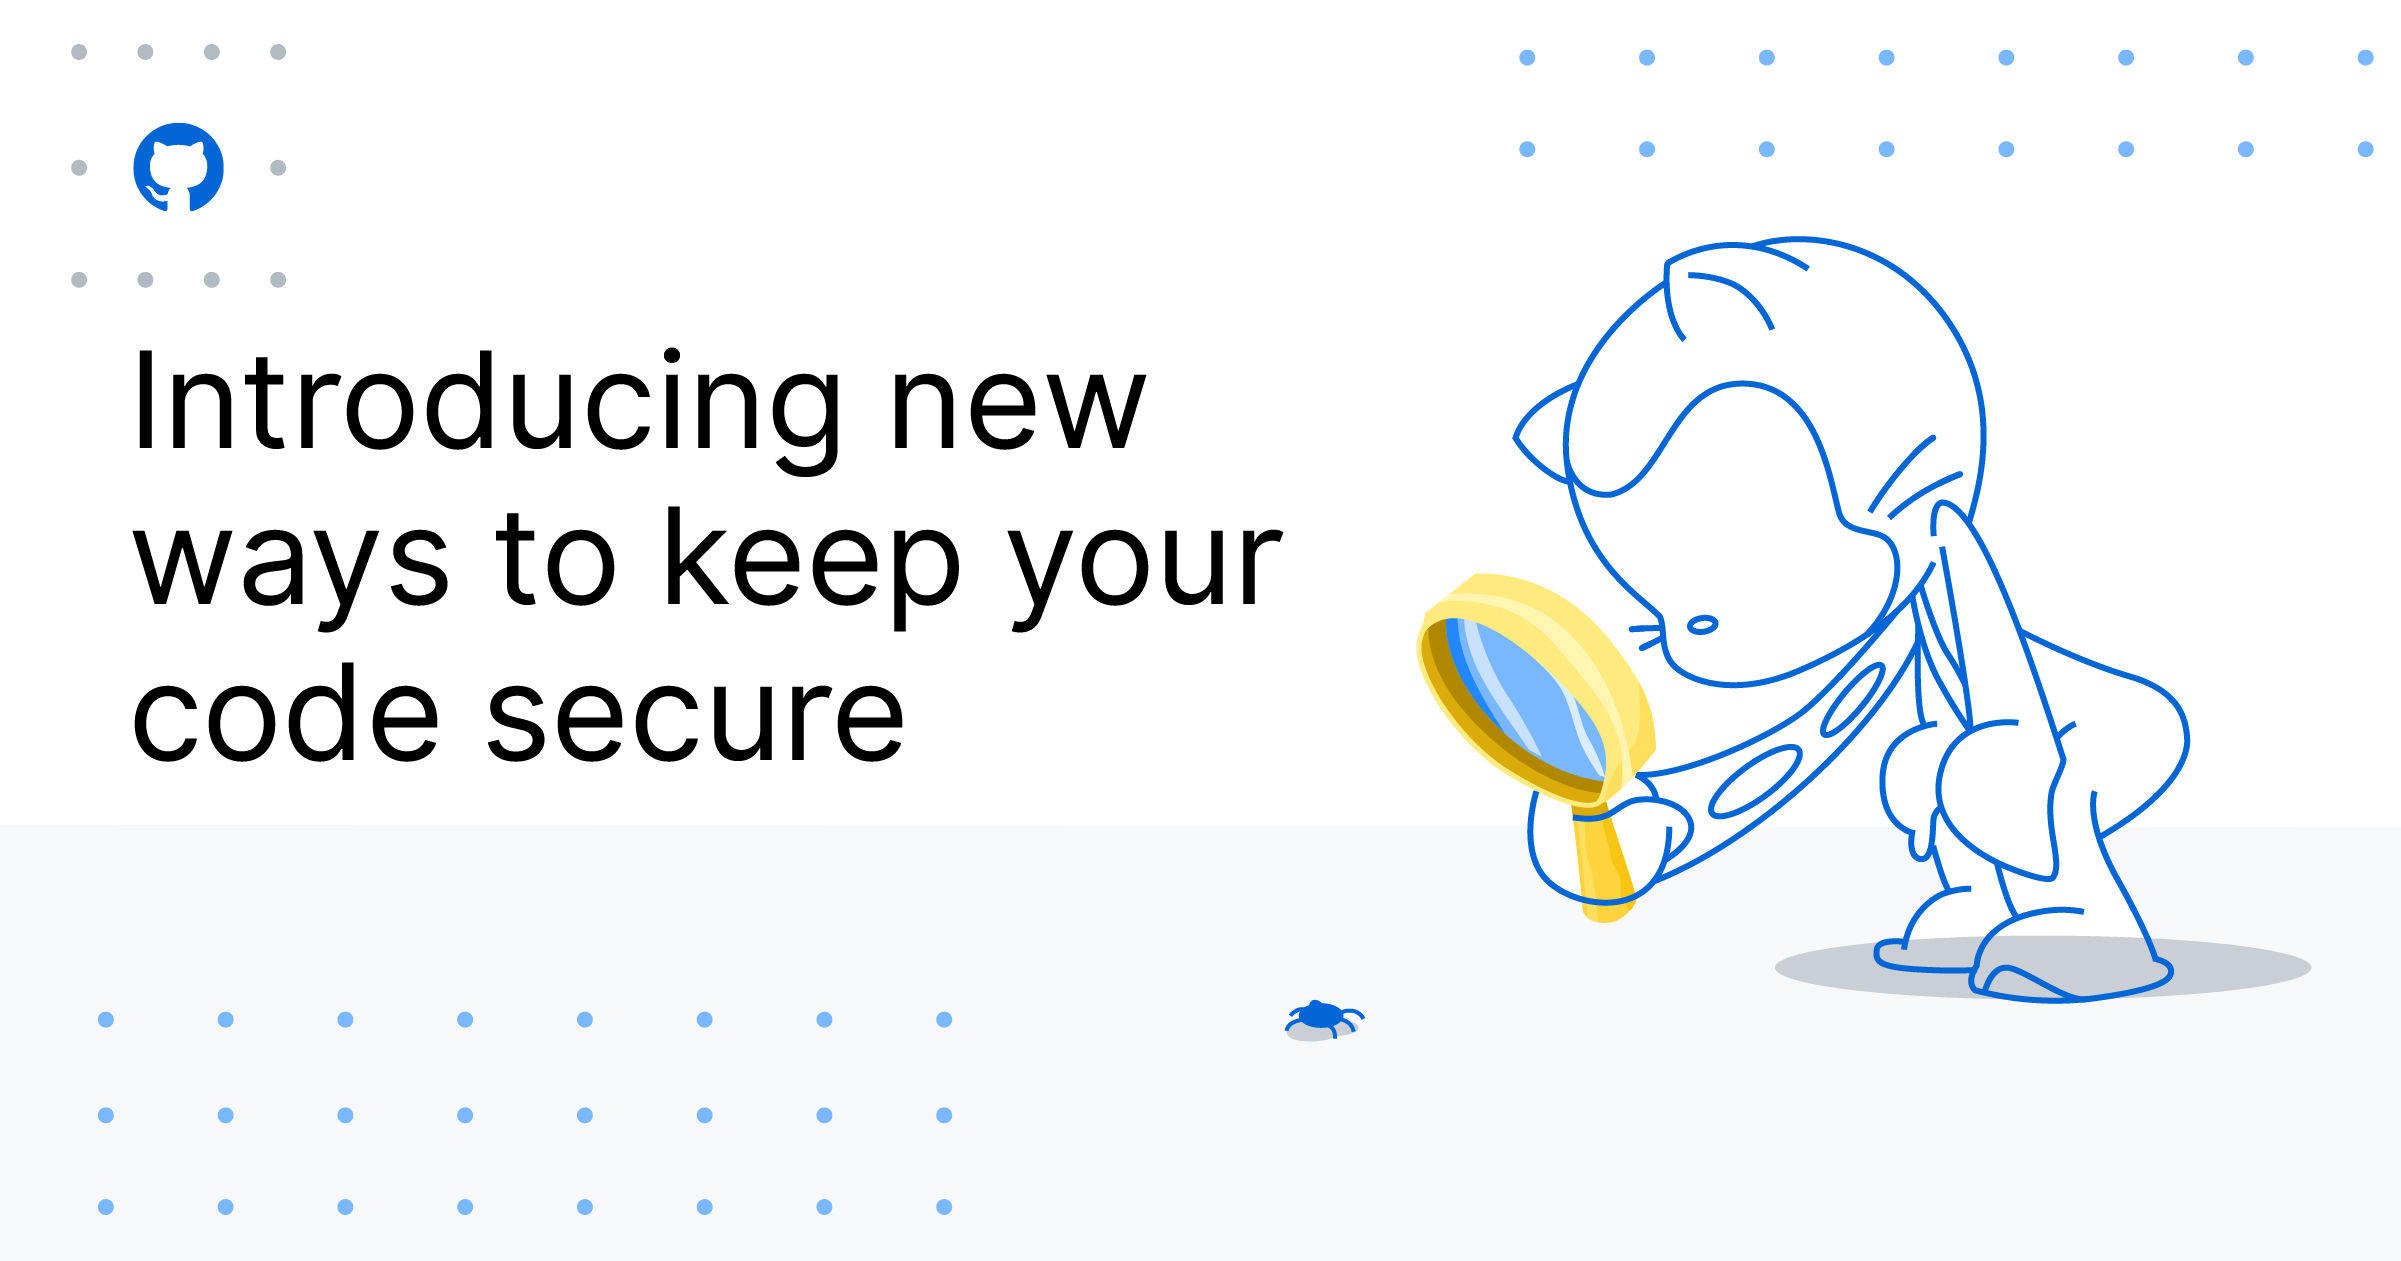 Introducing new ways to keep your code secure - The GitHub Blog